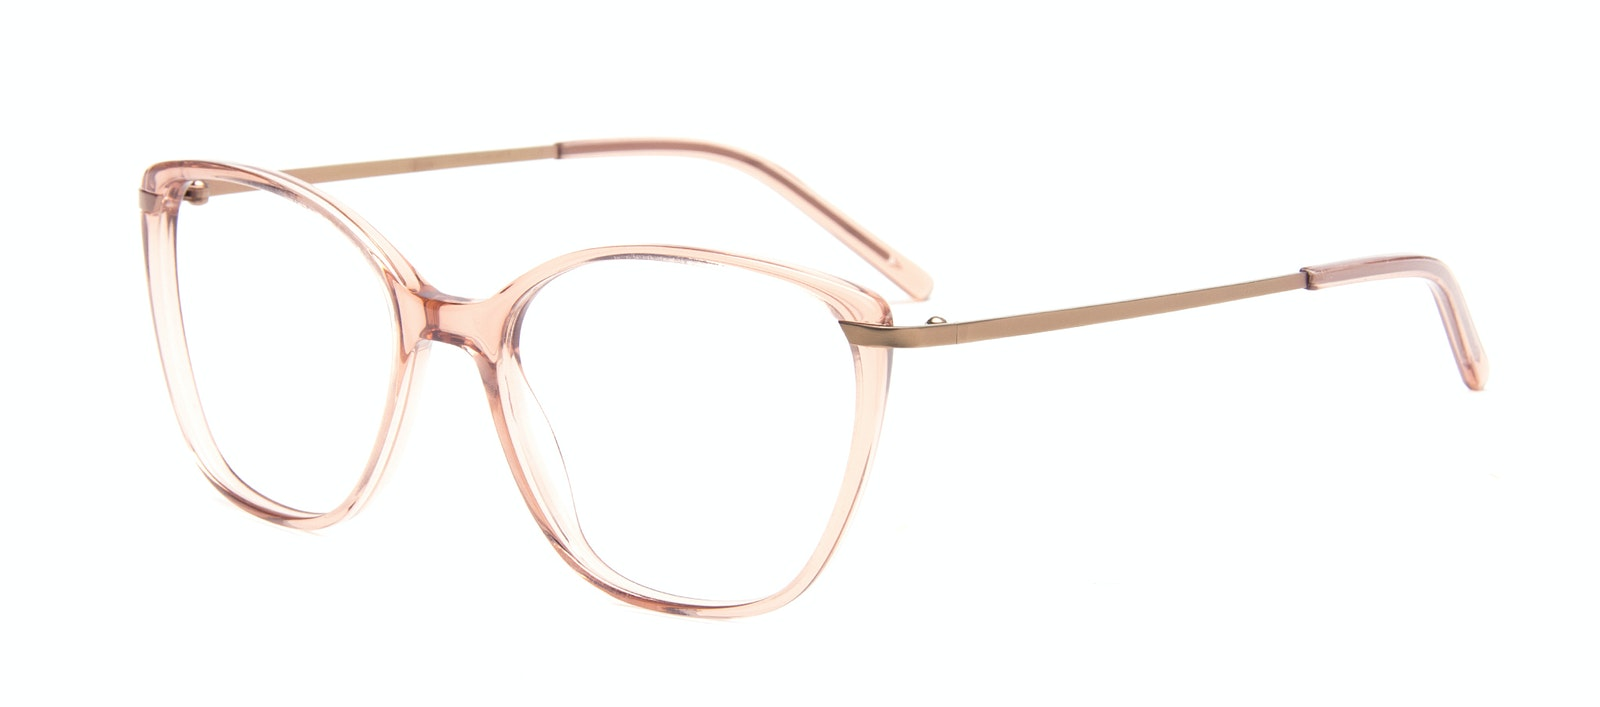 Affordable Fashion Glasses Rectangle Square Eyeglasses Women Illusion M Rose Tilt